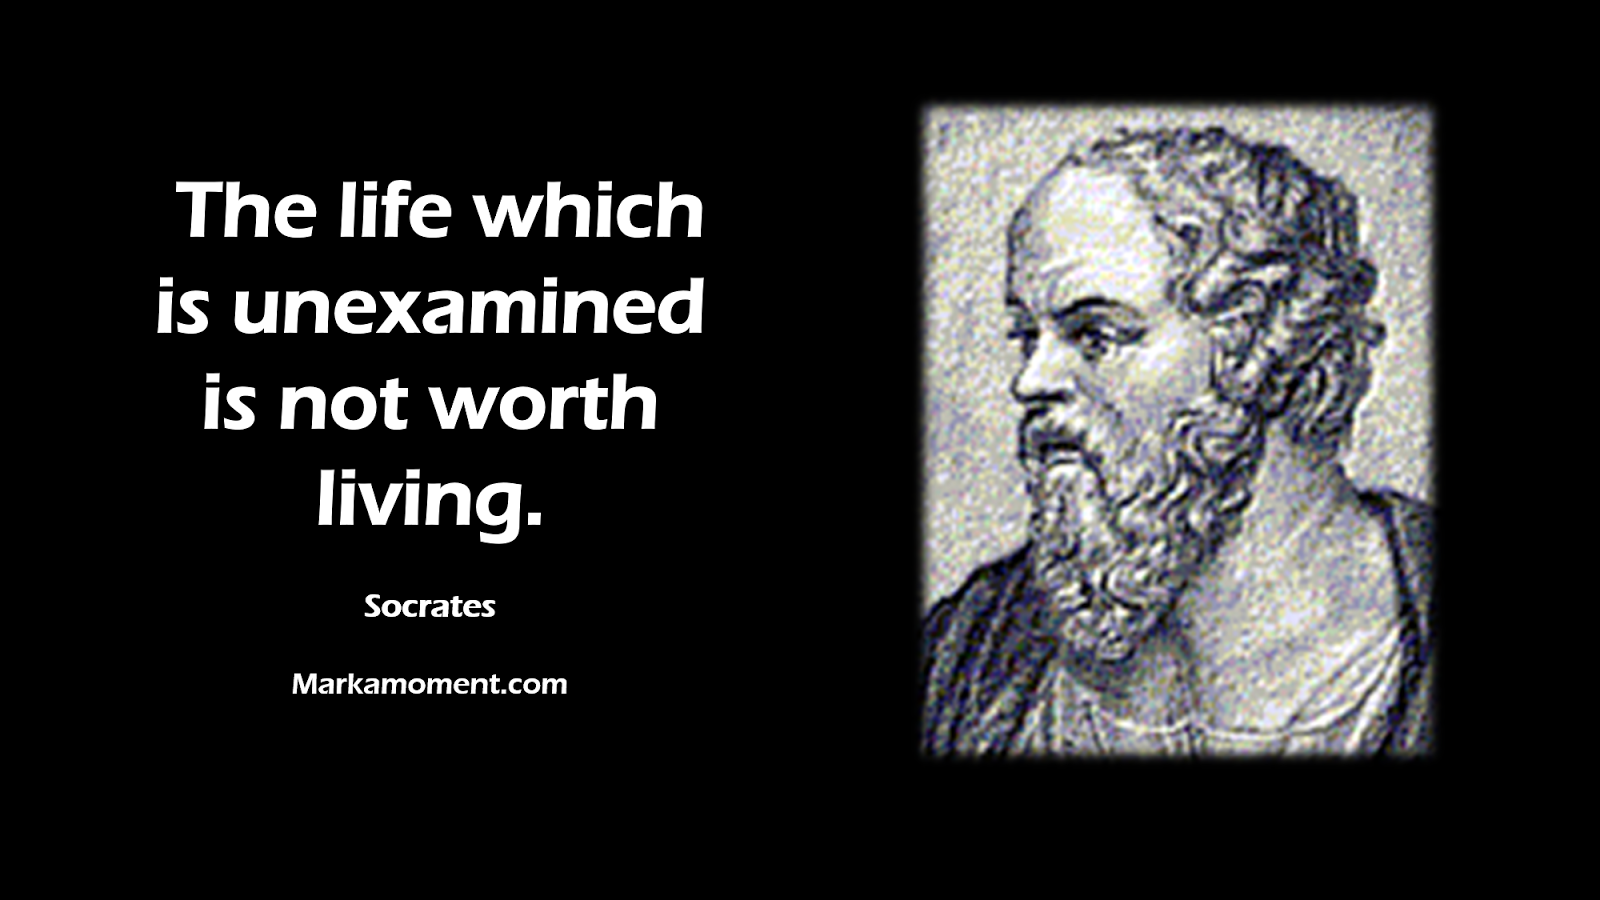 socrates an unexamined life We're on a mission of turning inspiring quotes into beautiful wallpapers start your week with a motivational kick don't miss out on our next weekly batch join 32,000+ other people and subscribe to quotefancy weekly digest.